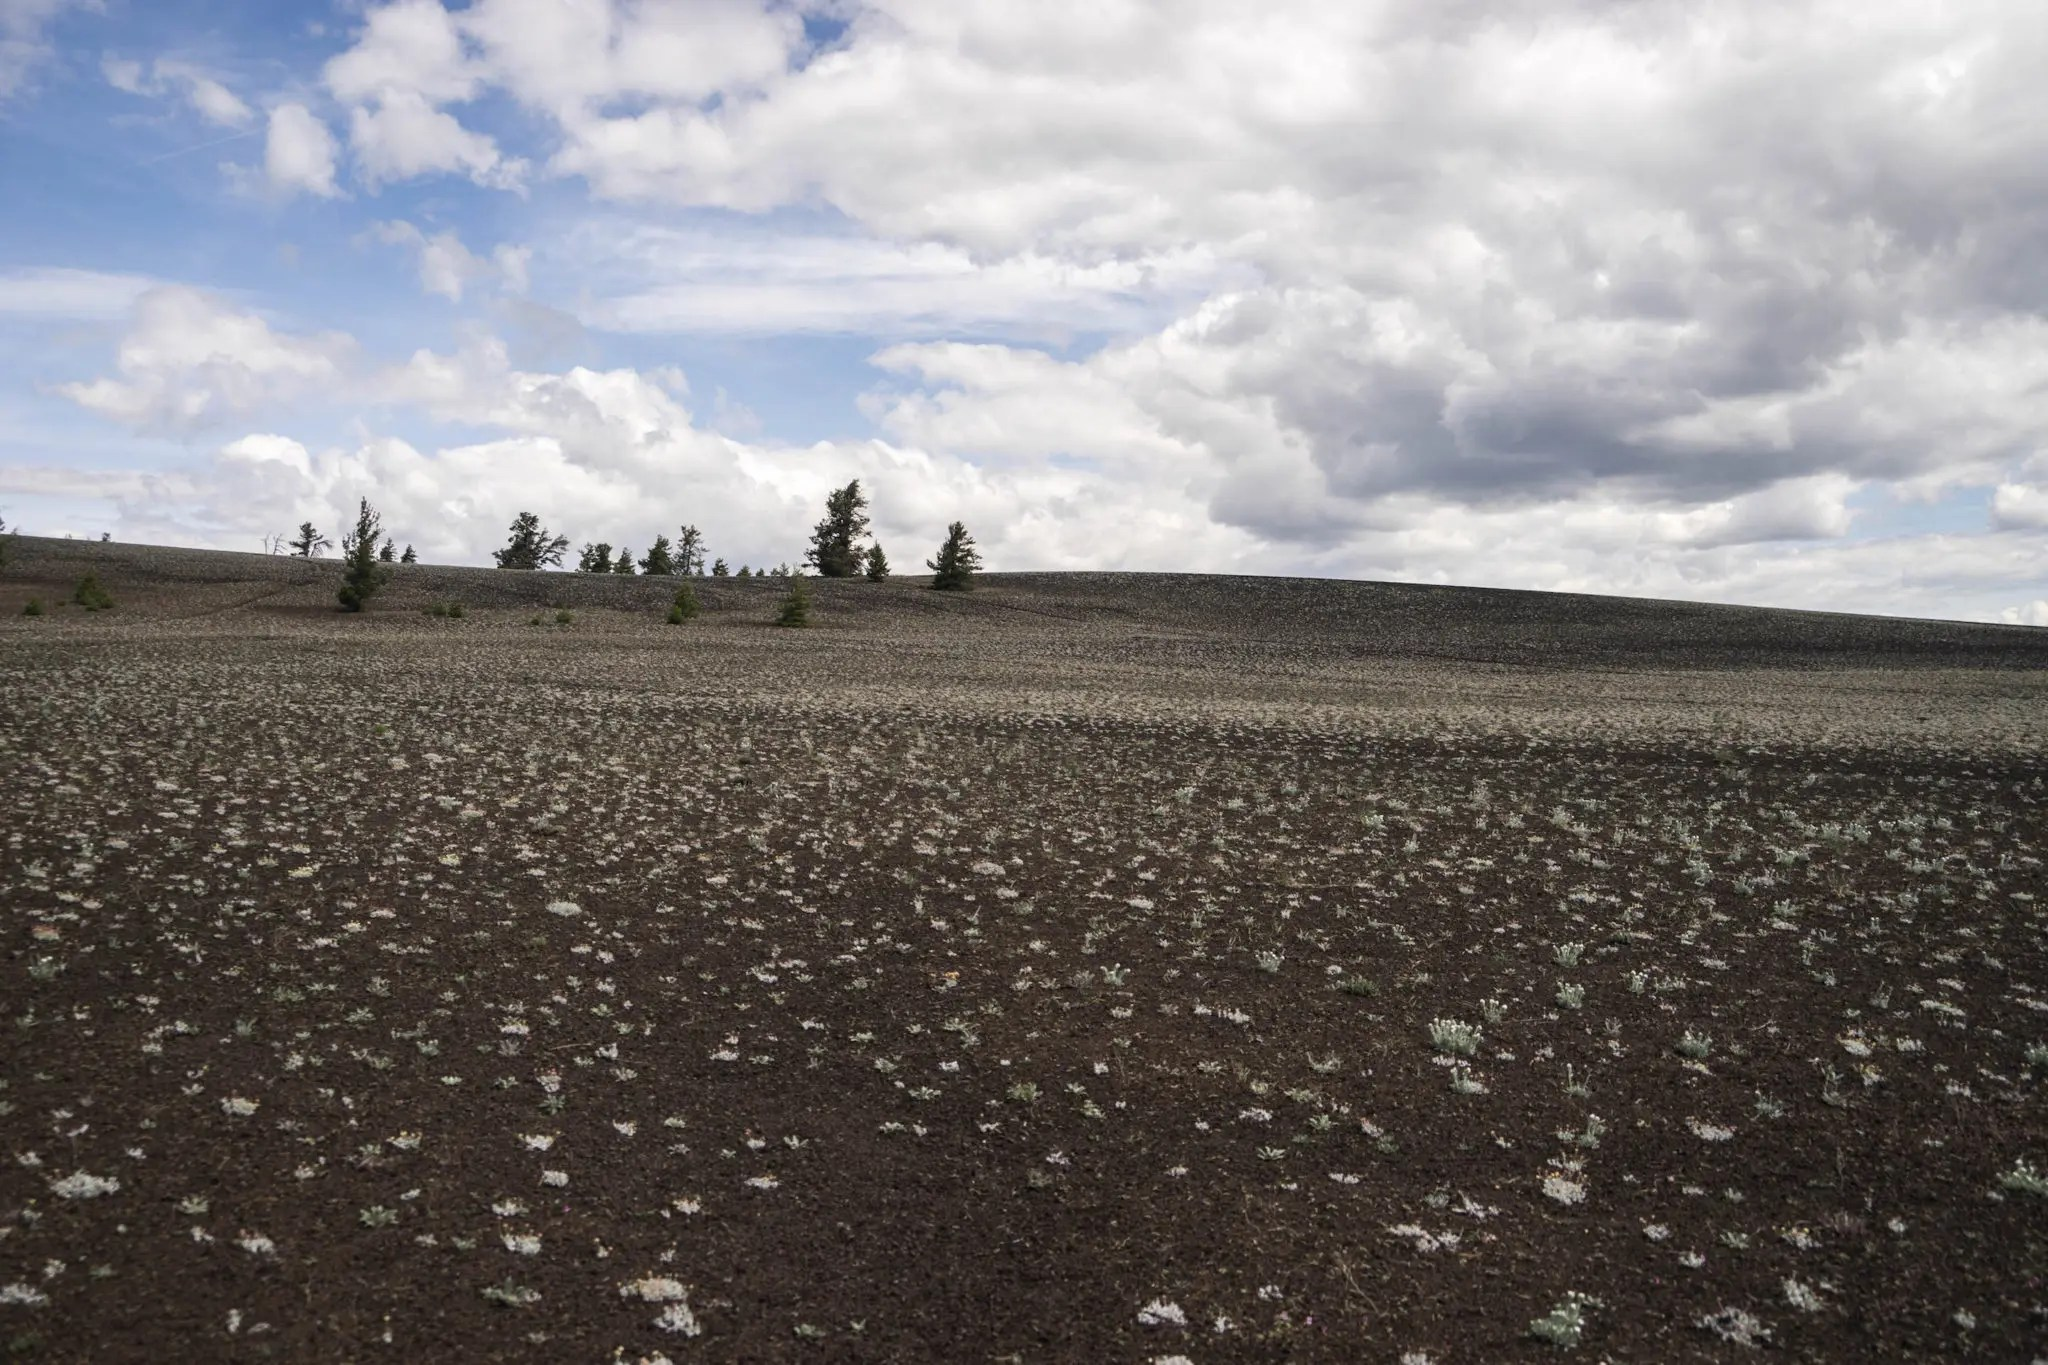 A field of cinder and lava rocks